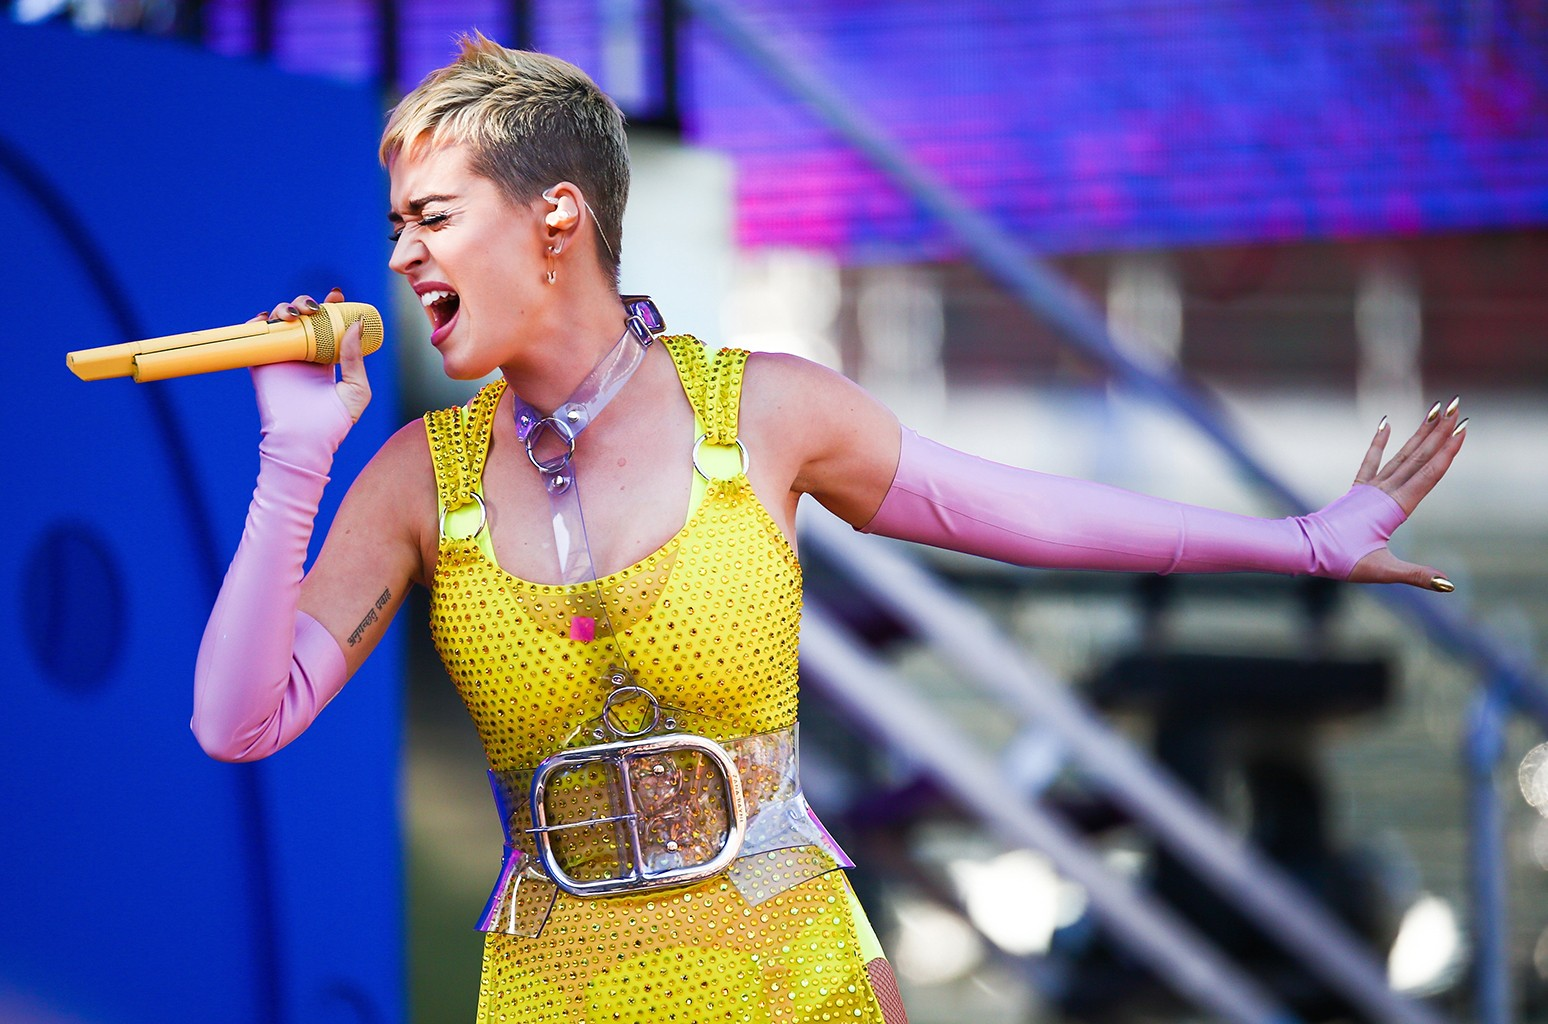 Katy Perry performs during 102.7 KIIS FM's 2017 Wango Tango at StubHub Center on May 13, 2017 in Carson, Calif.